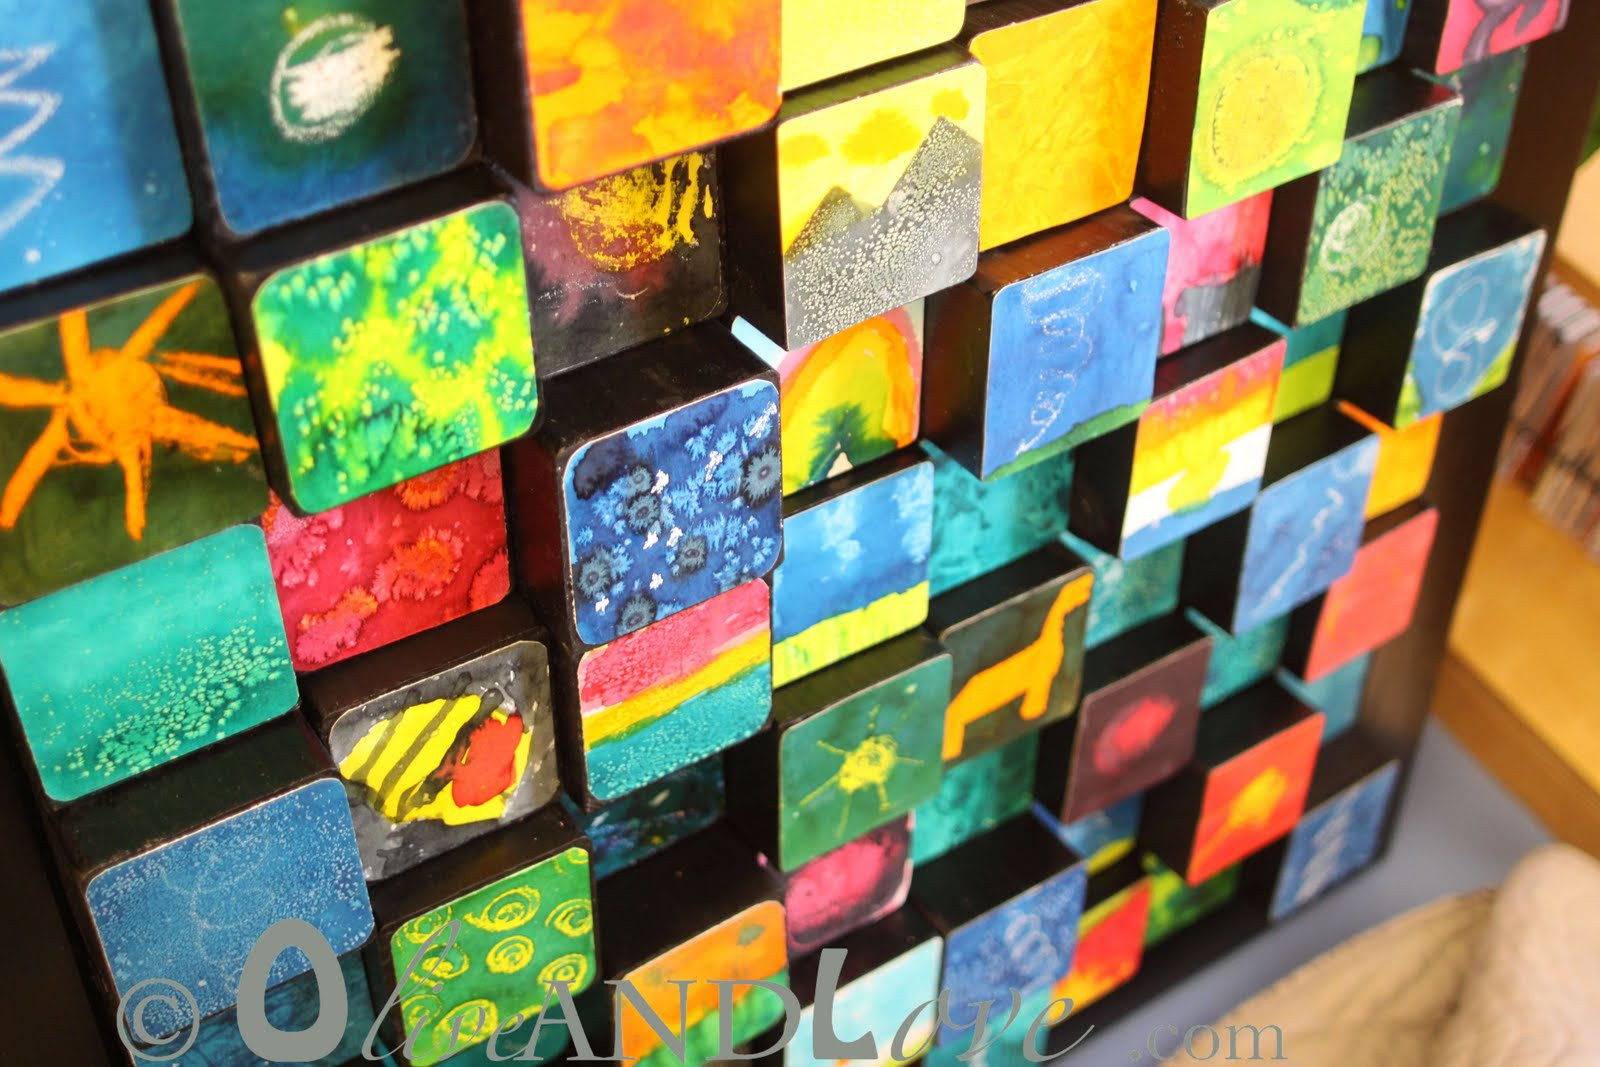 3D Art Projects For Kids  Olive and Love 3D wooden blocks – Children's Auction Art